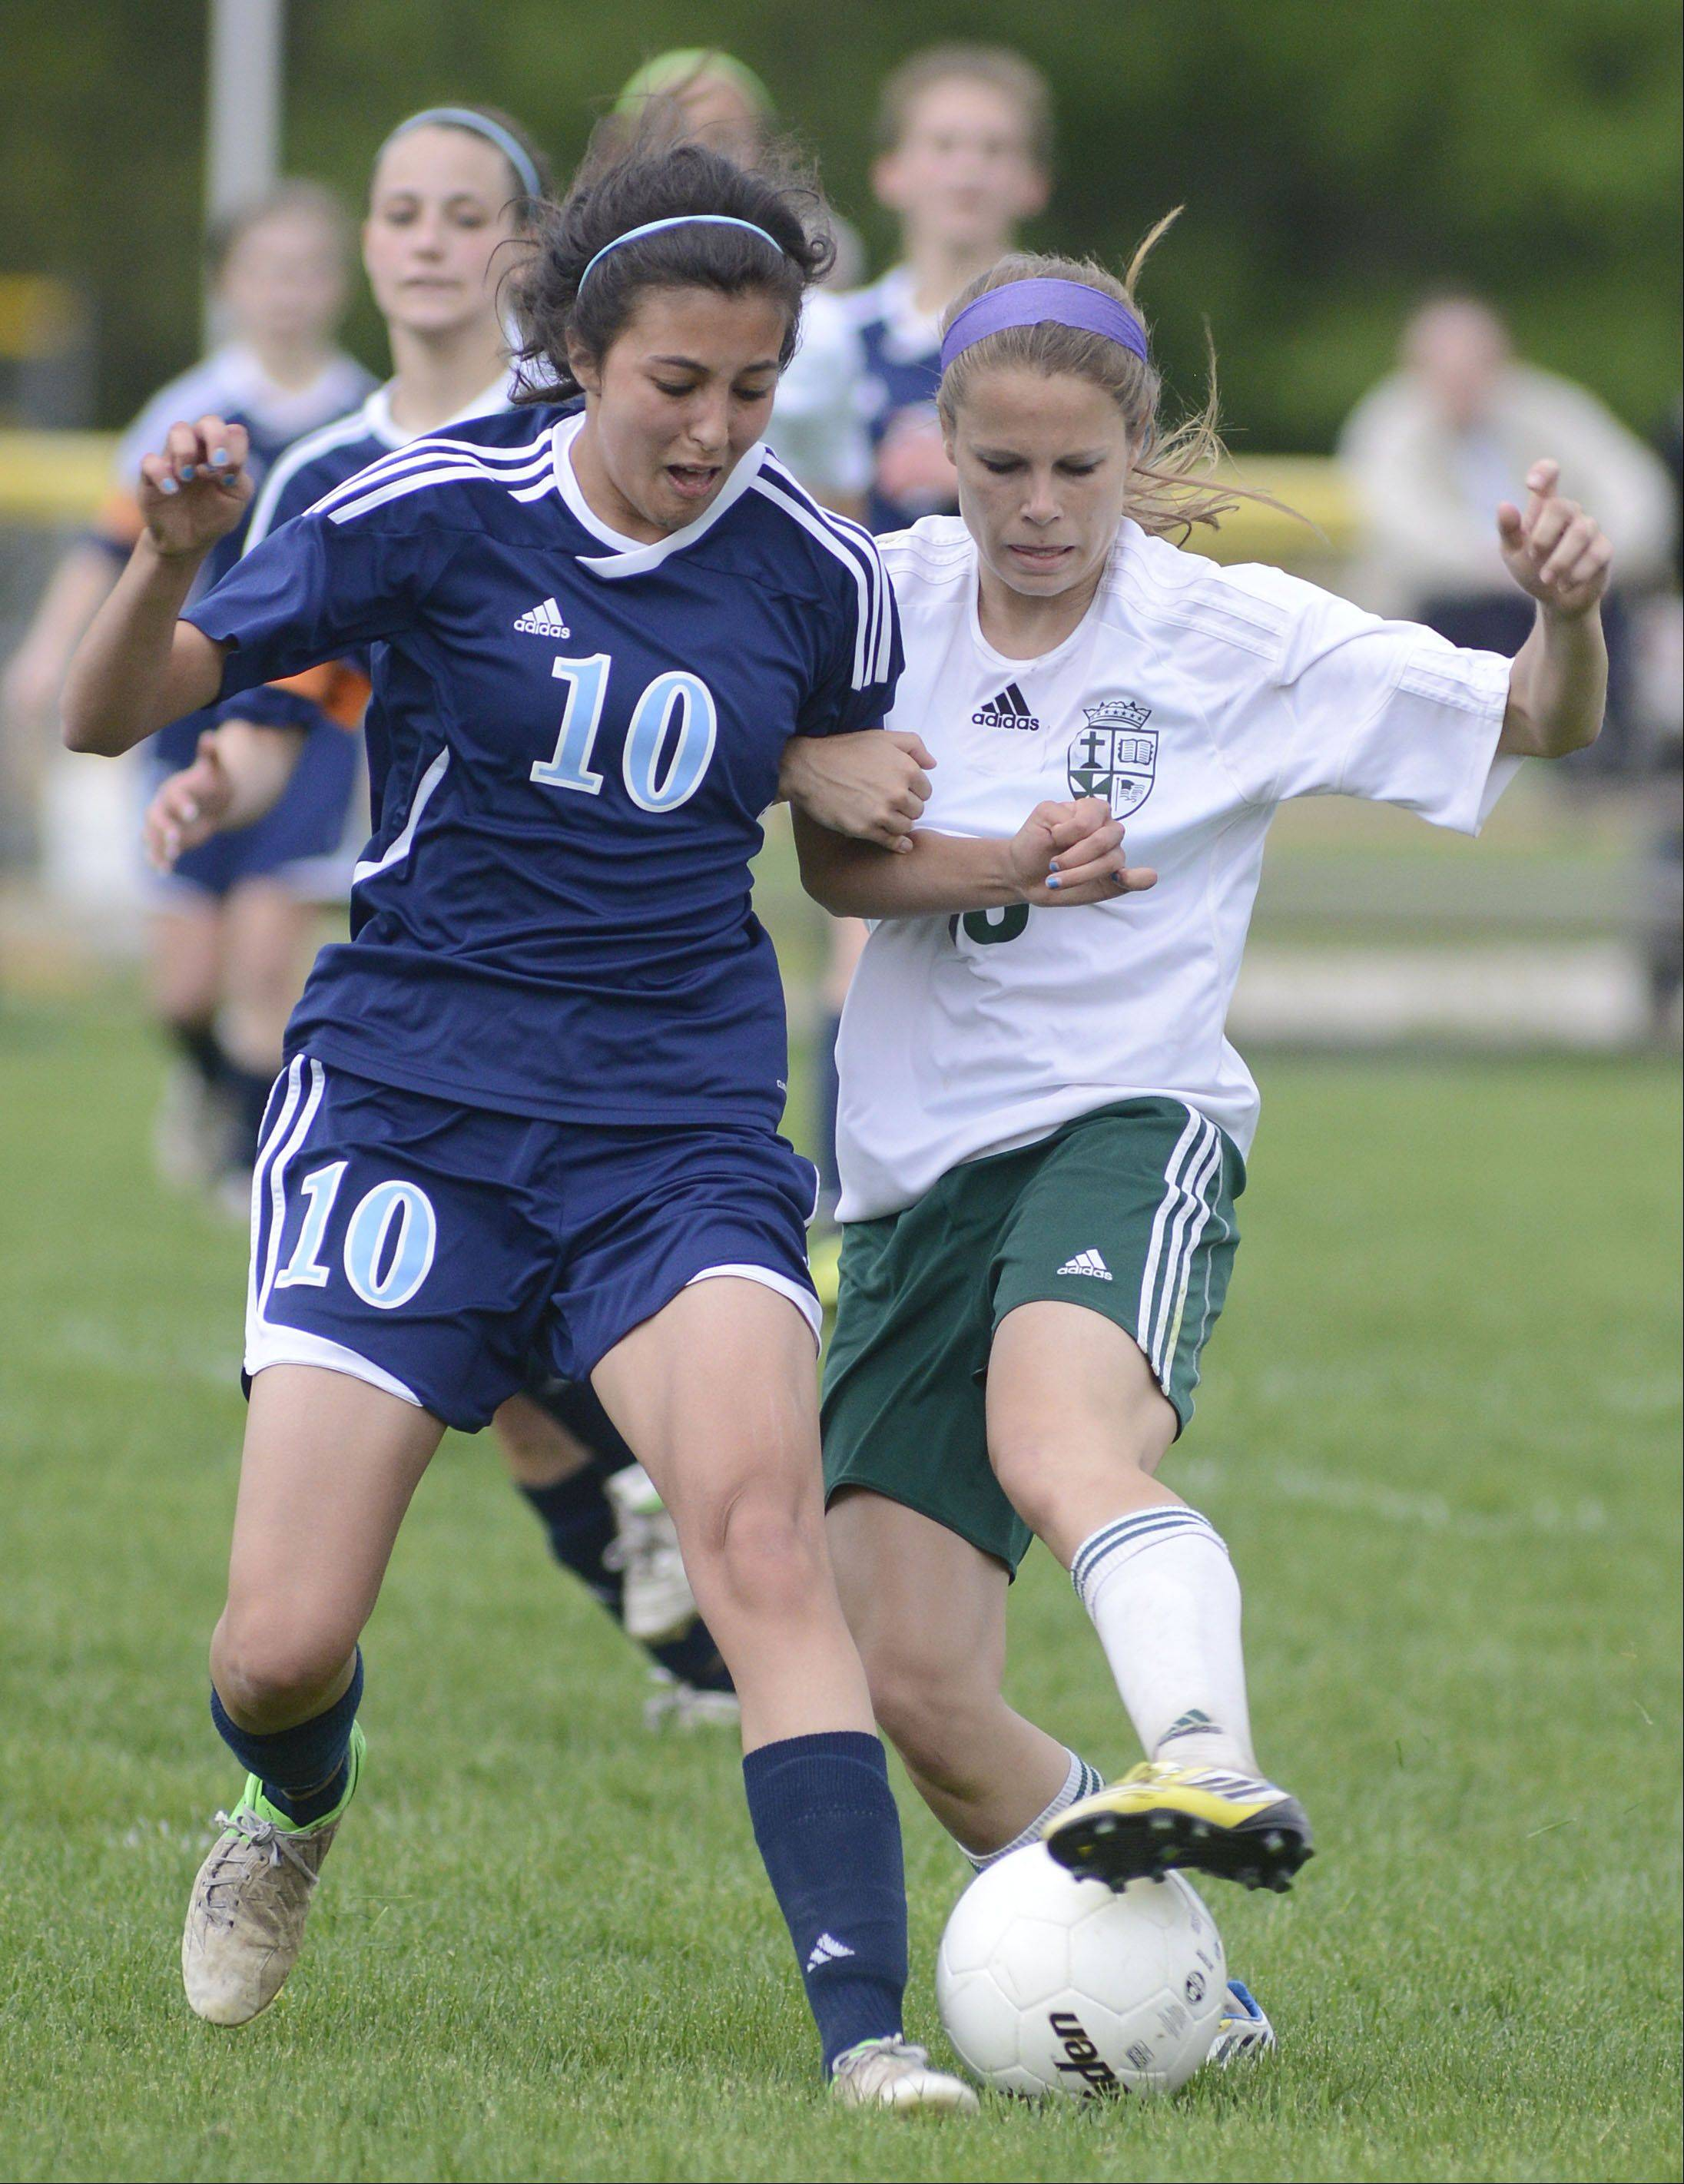 Willows Academy's Marta Brown and St. Edward's Meagan Kearney battle for the ball in the second half of the Class 1A girls soccer sectional title game on Friday, May 17.